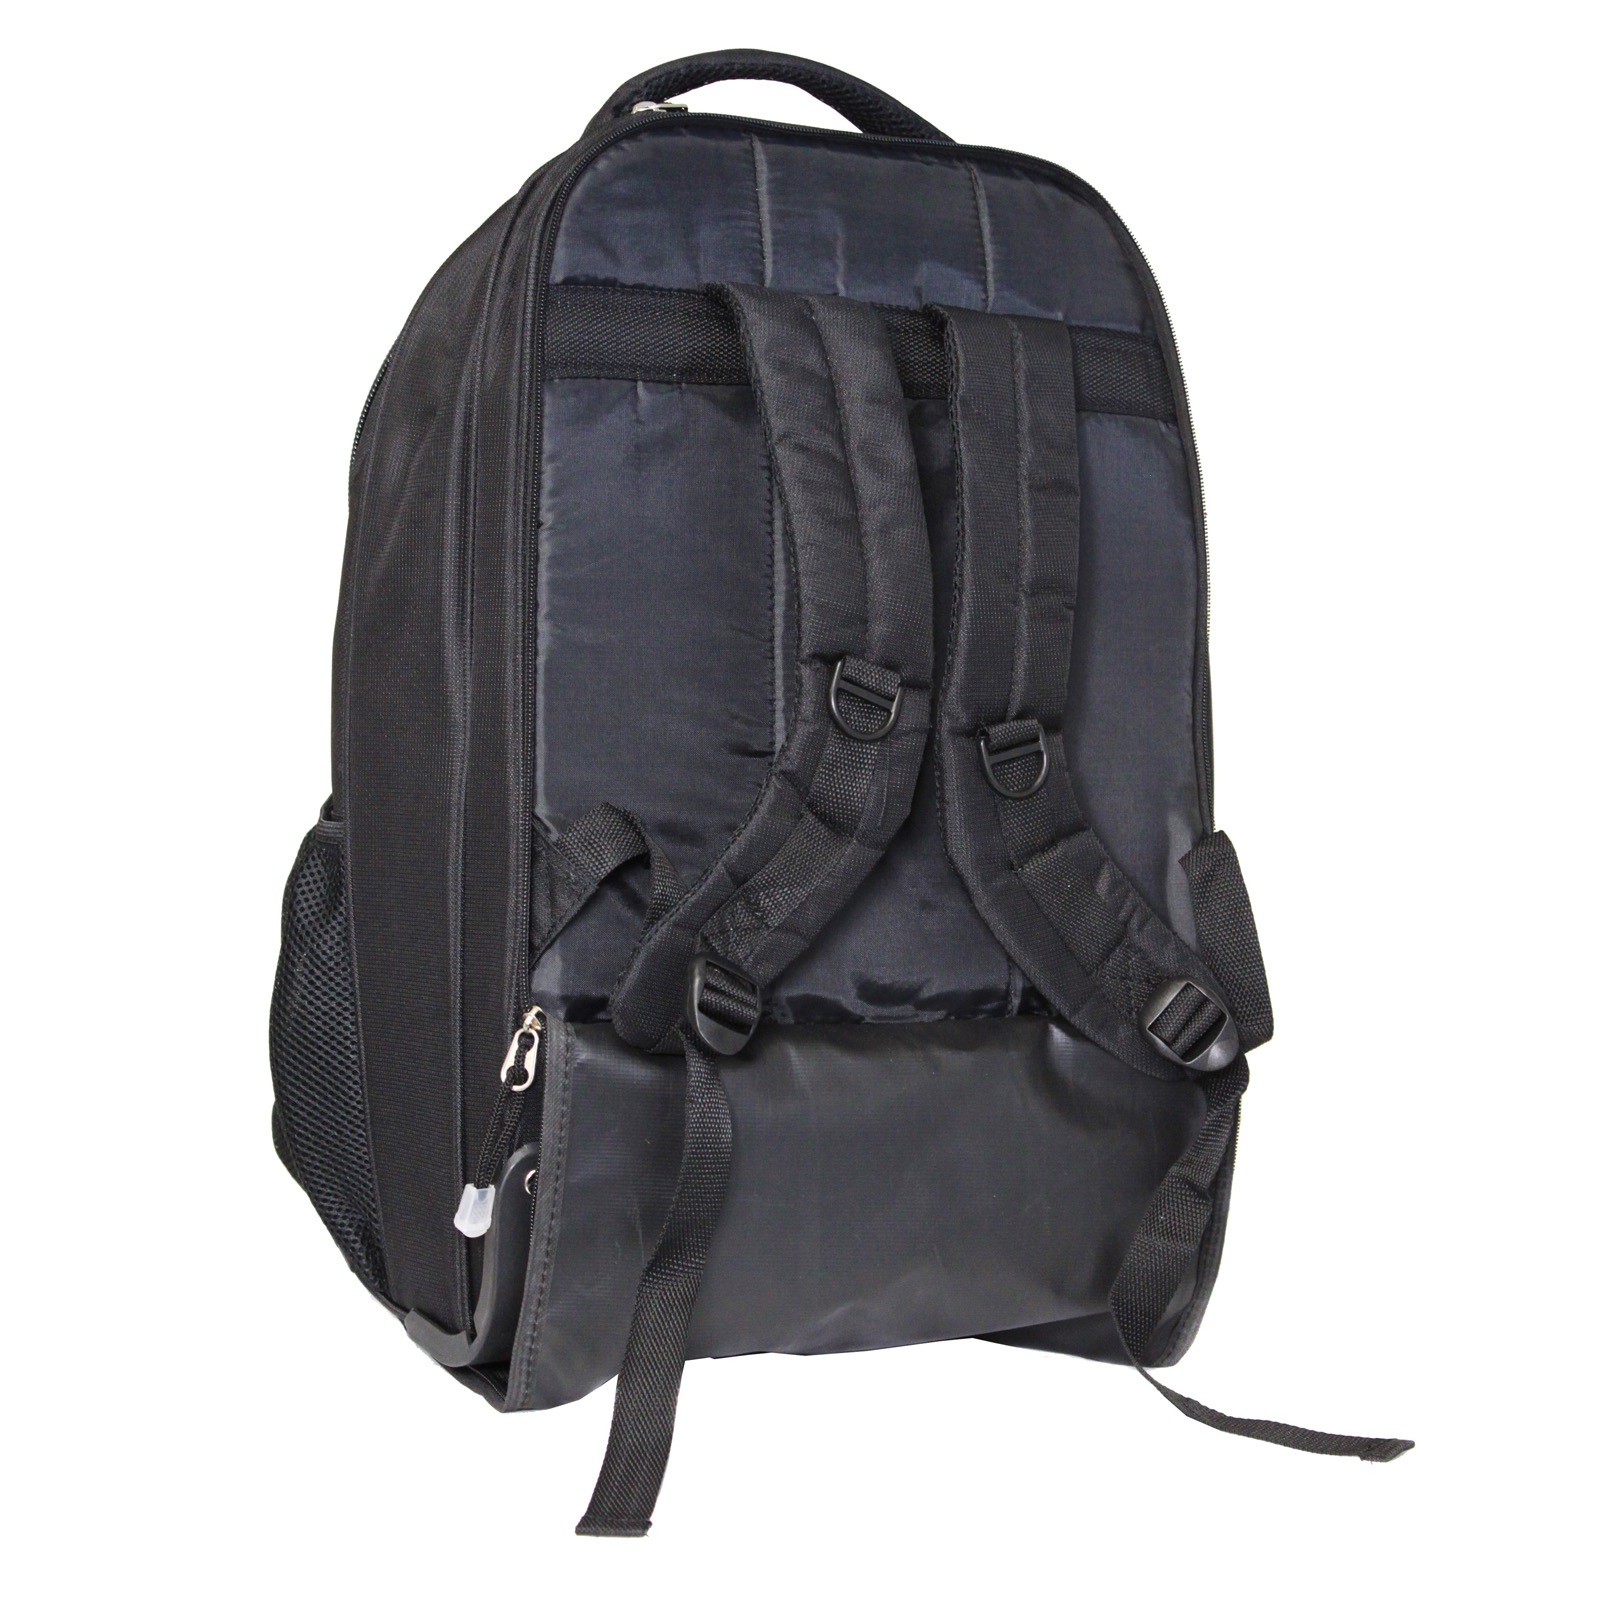 Green Travel USA Carry-On Rolling 17-inch Laptop Backpack | eBay